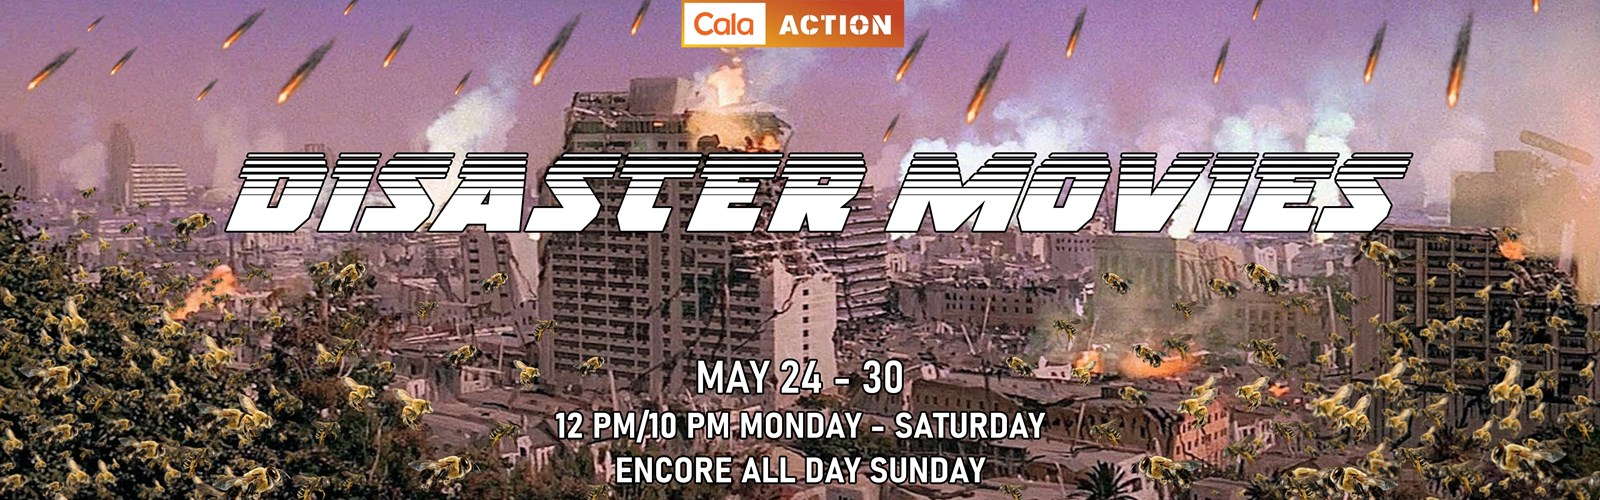 Disaster Movies Web Banner Image